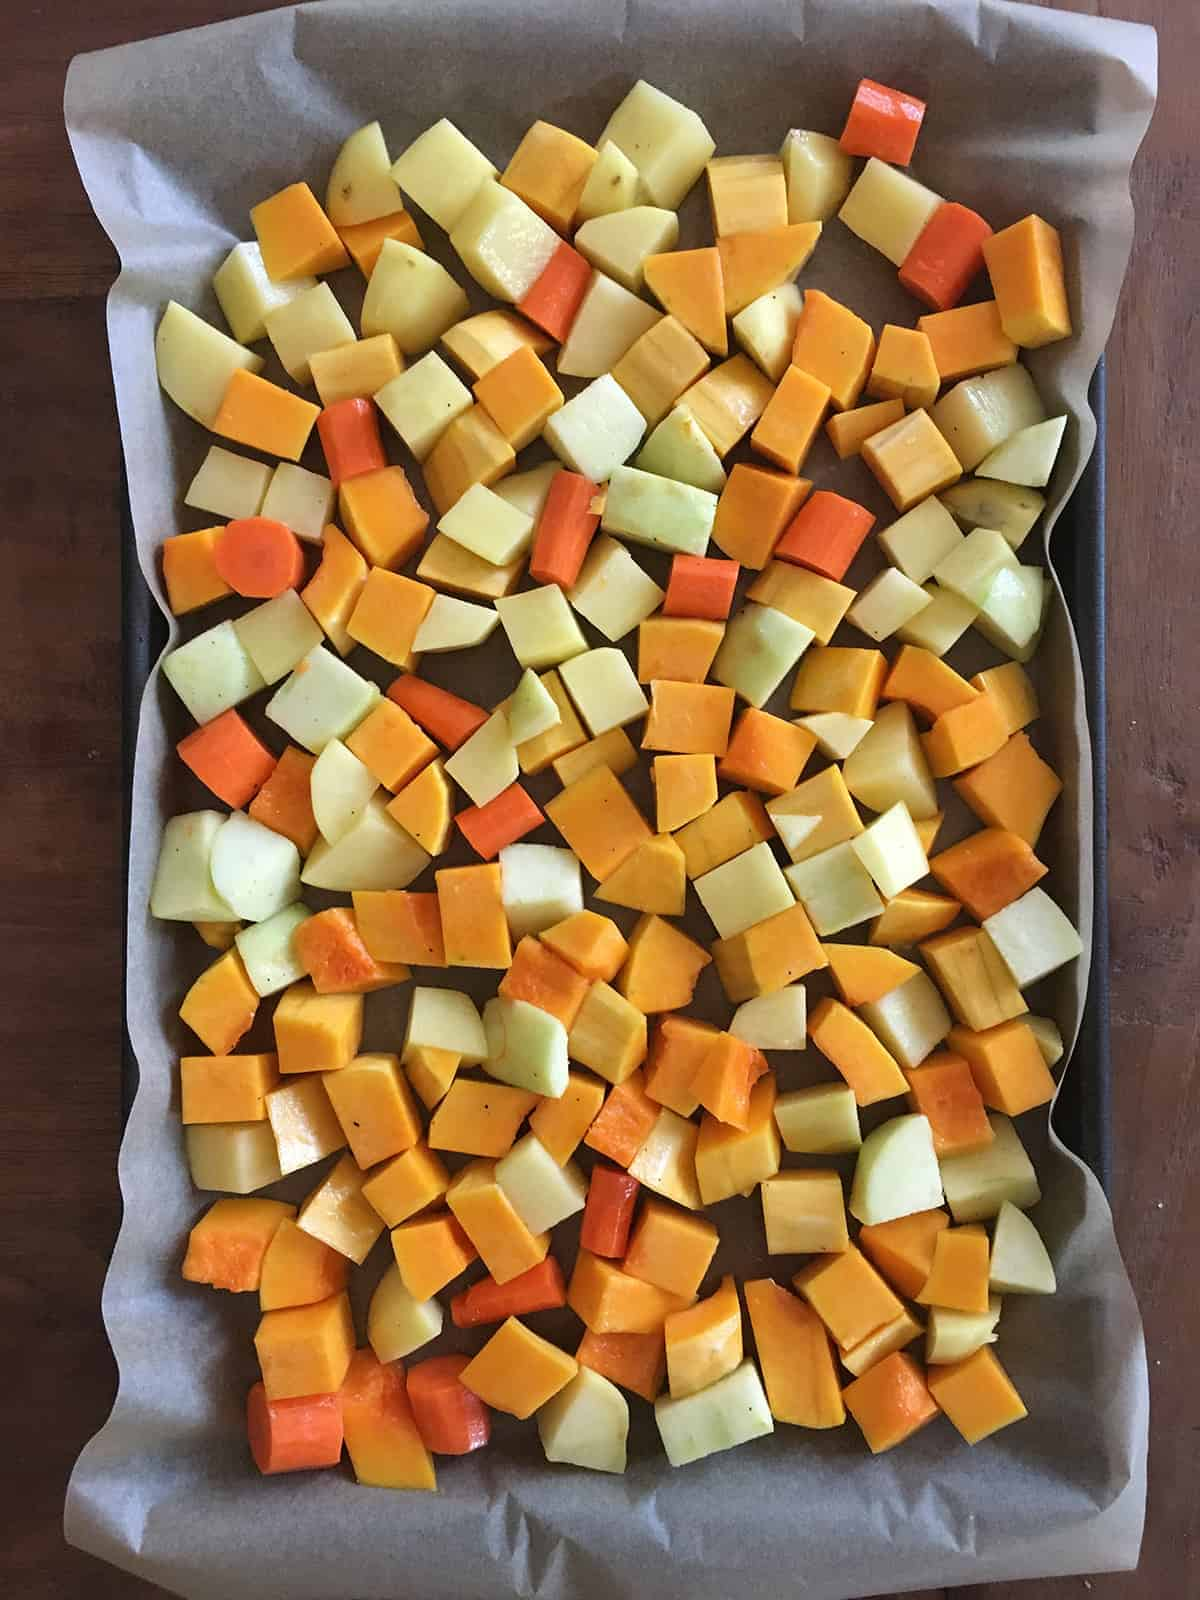 Chopped veggies and apples on a metal sheet pan lined with parchment paper